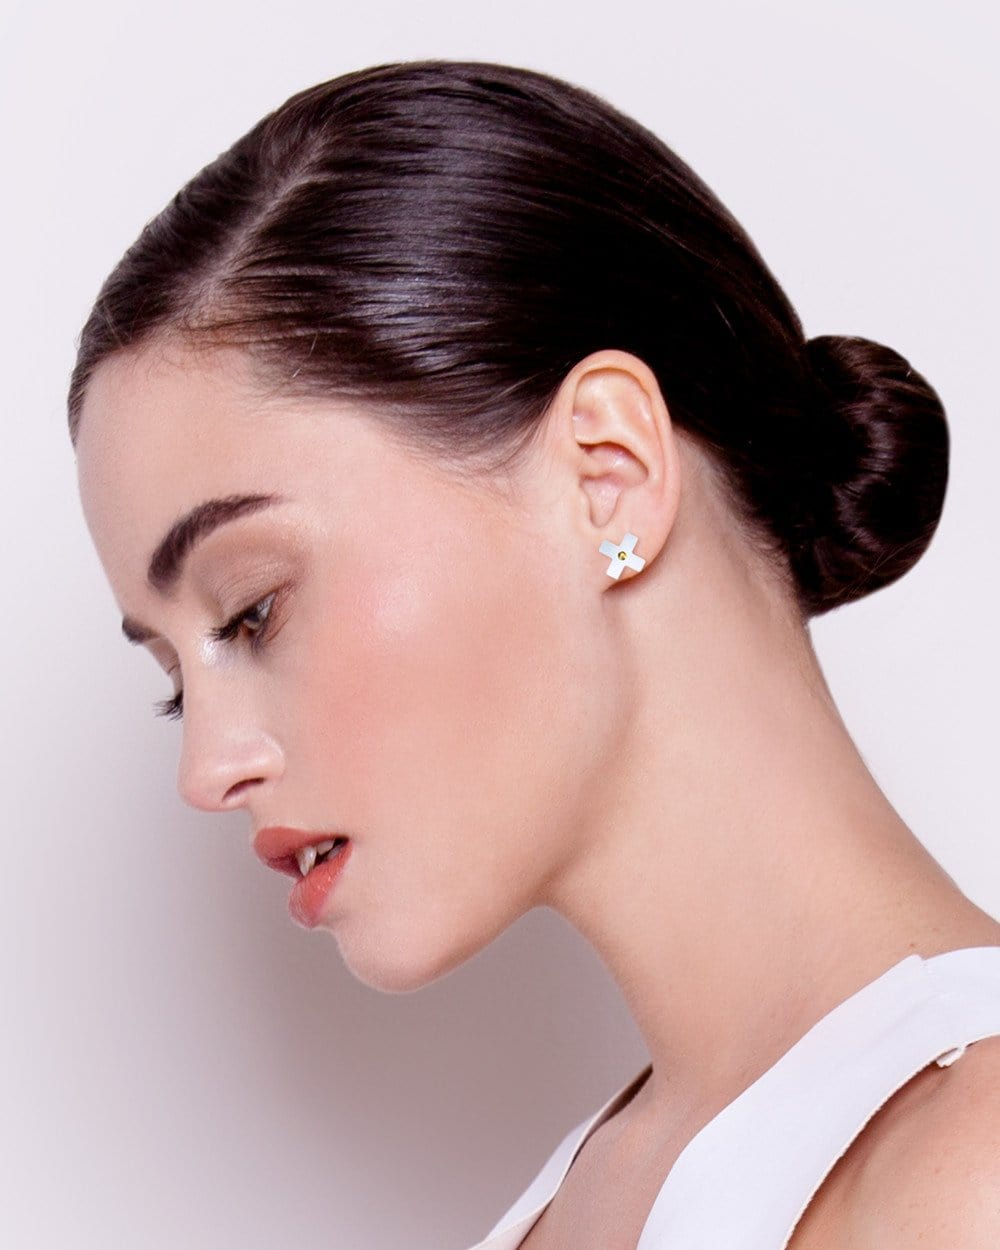 Signature Hugs & Kisses Stud Earrings by Moe Moe Design | Shop Jewellery | Greenhouse Interiors